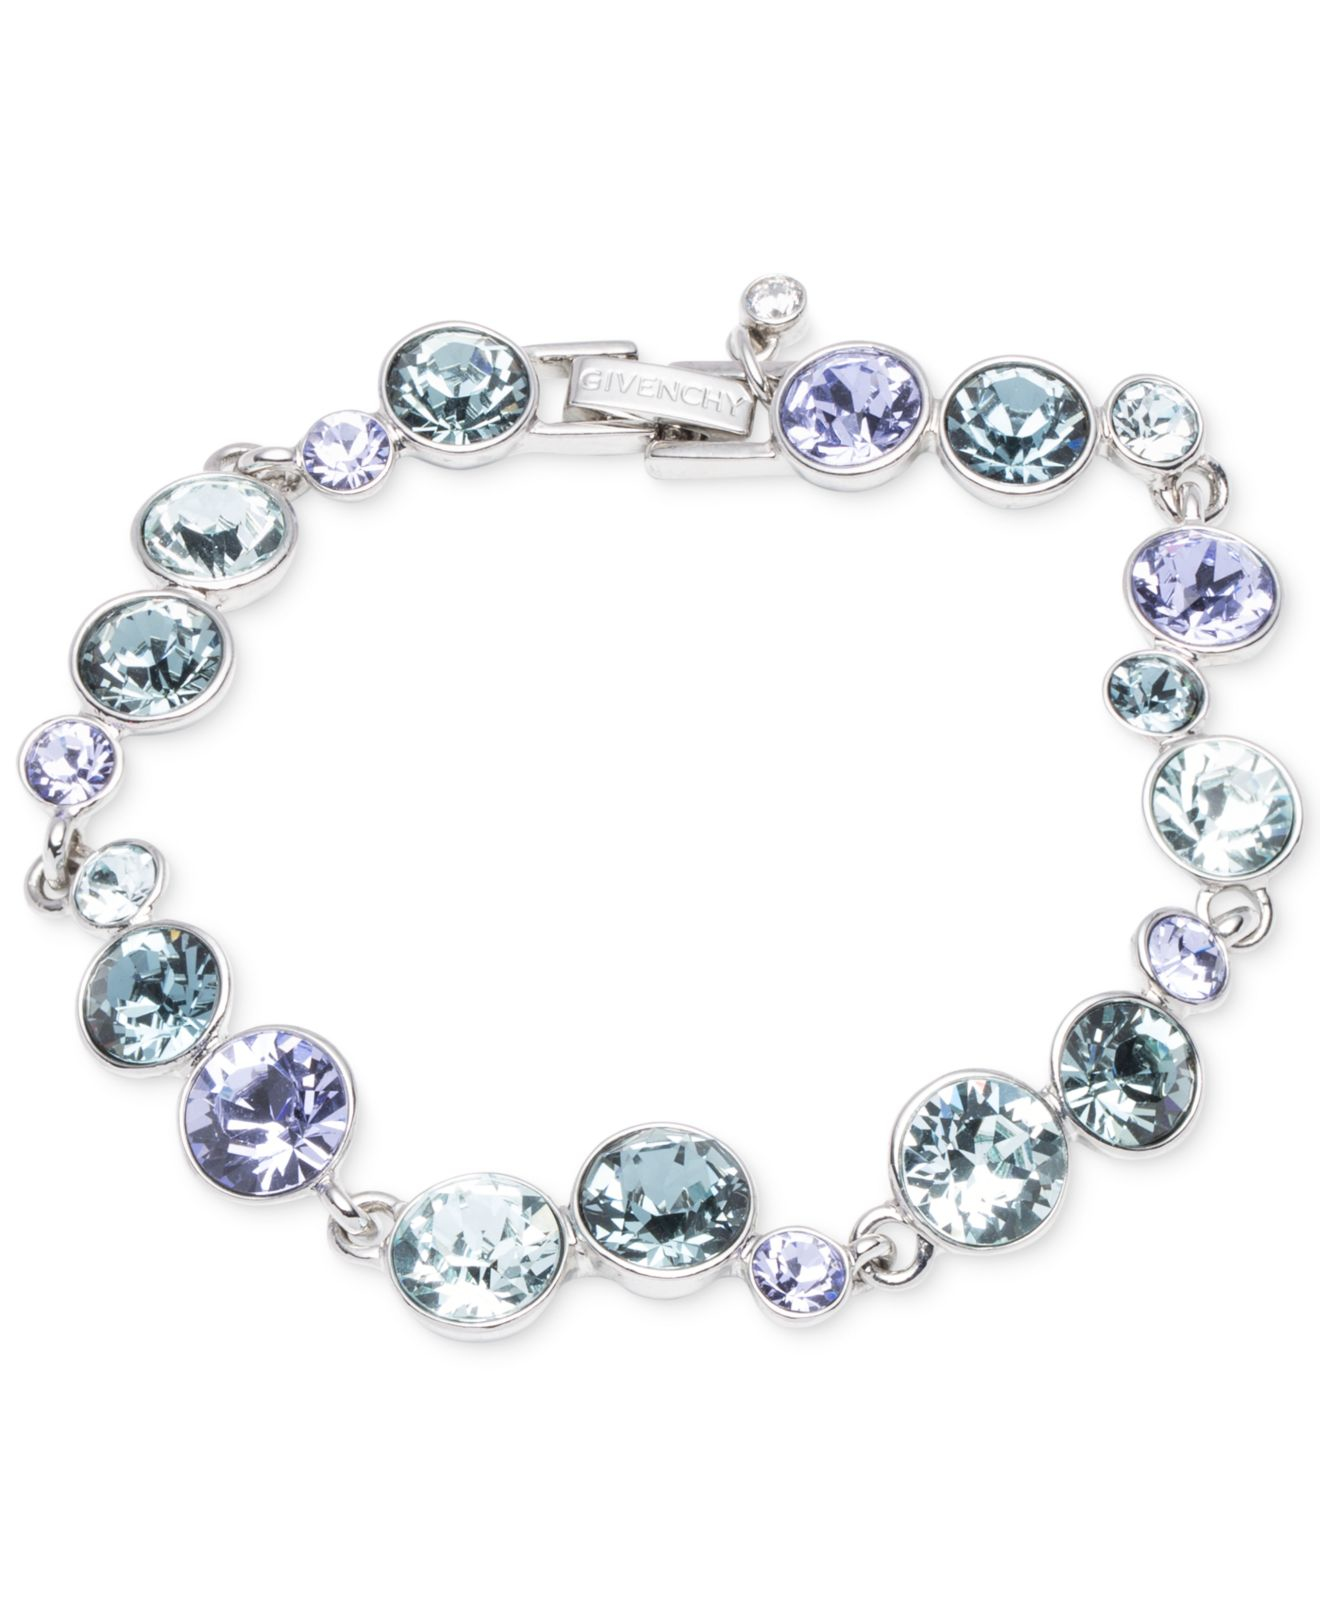 Lyst - Givenchy Silver-tone Blue Crystal Bracelet in Blue